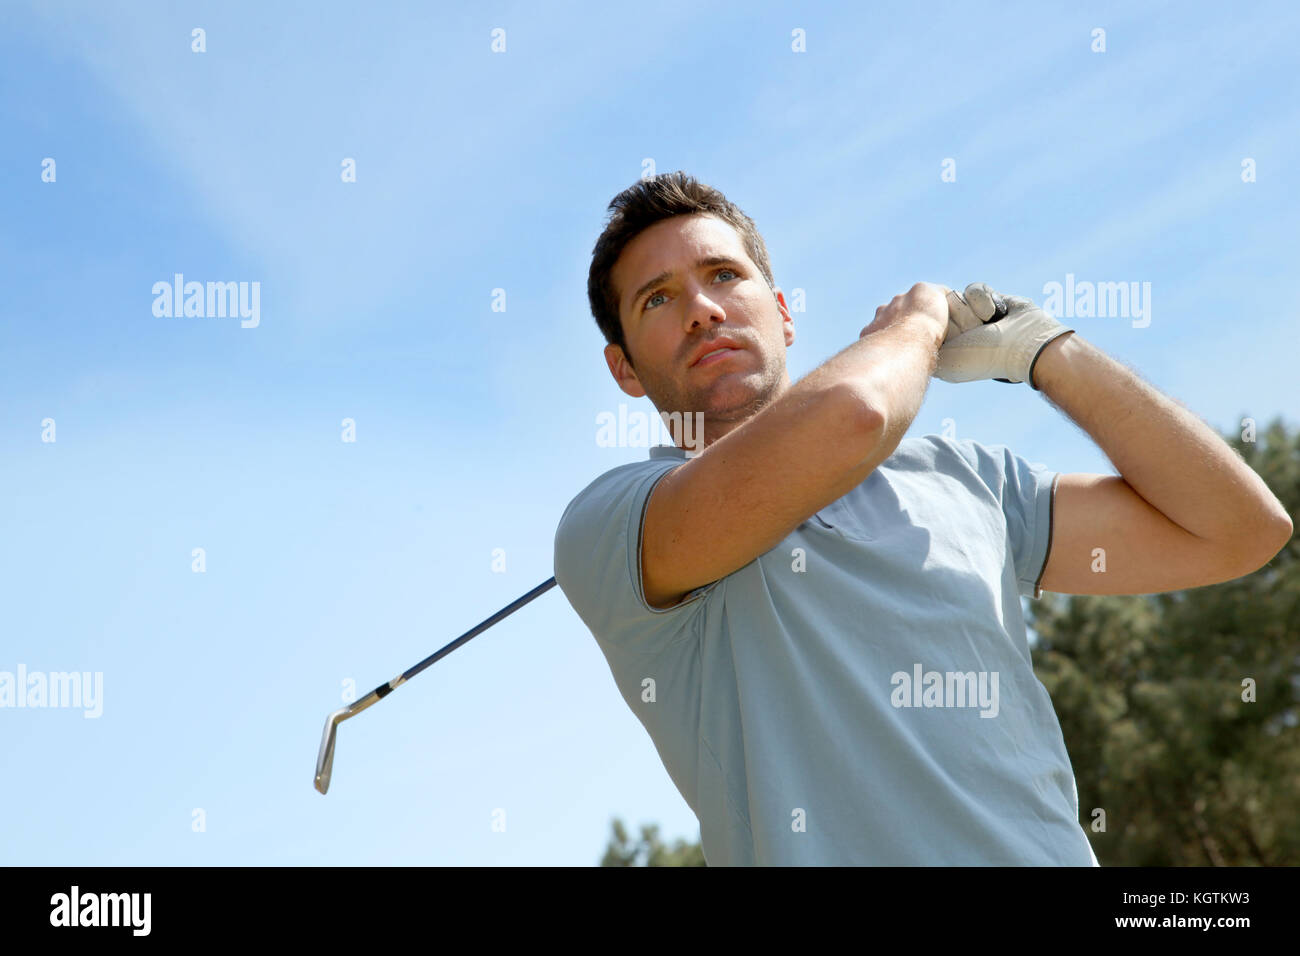 Portrait of golfer playing in summertime - Stock Image